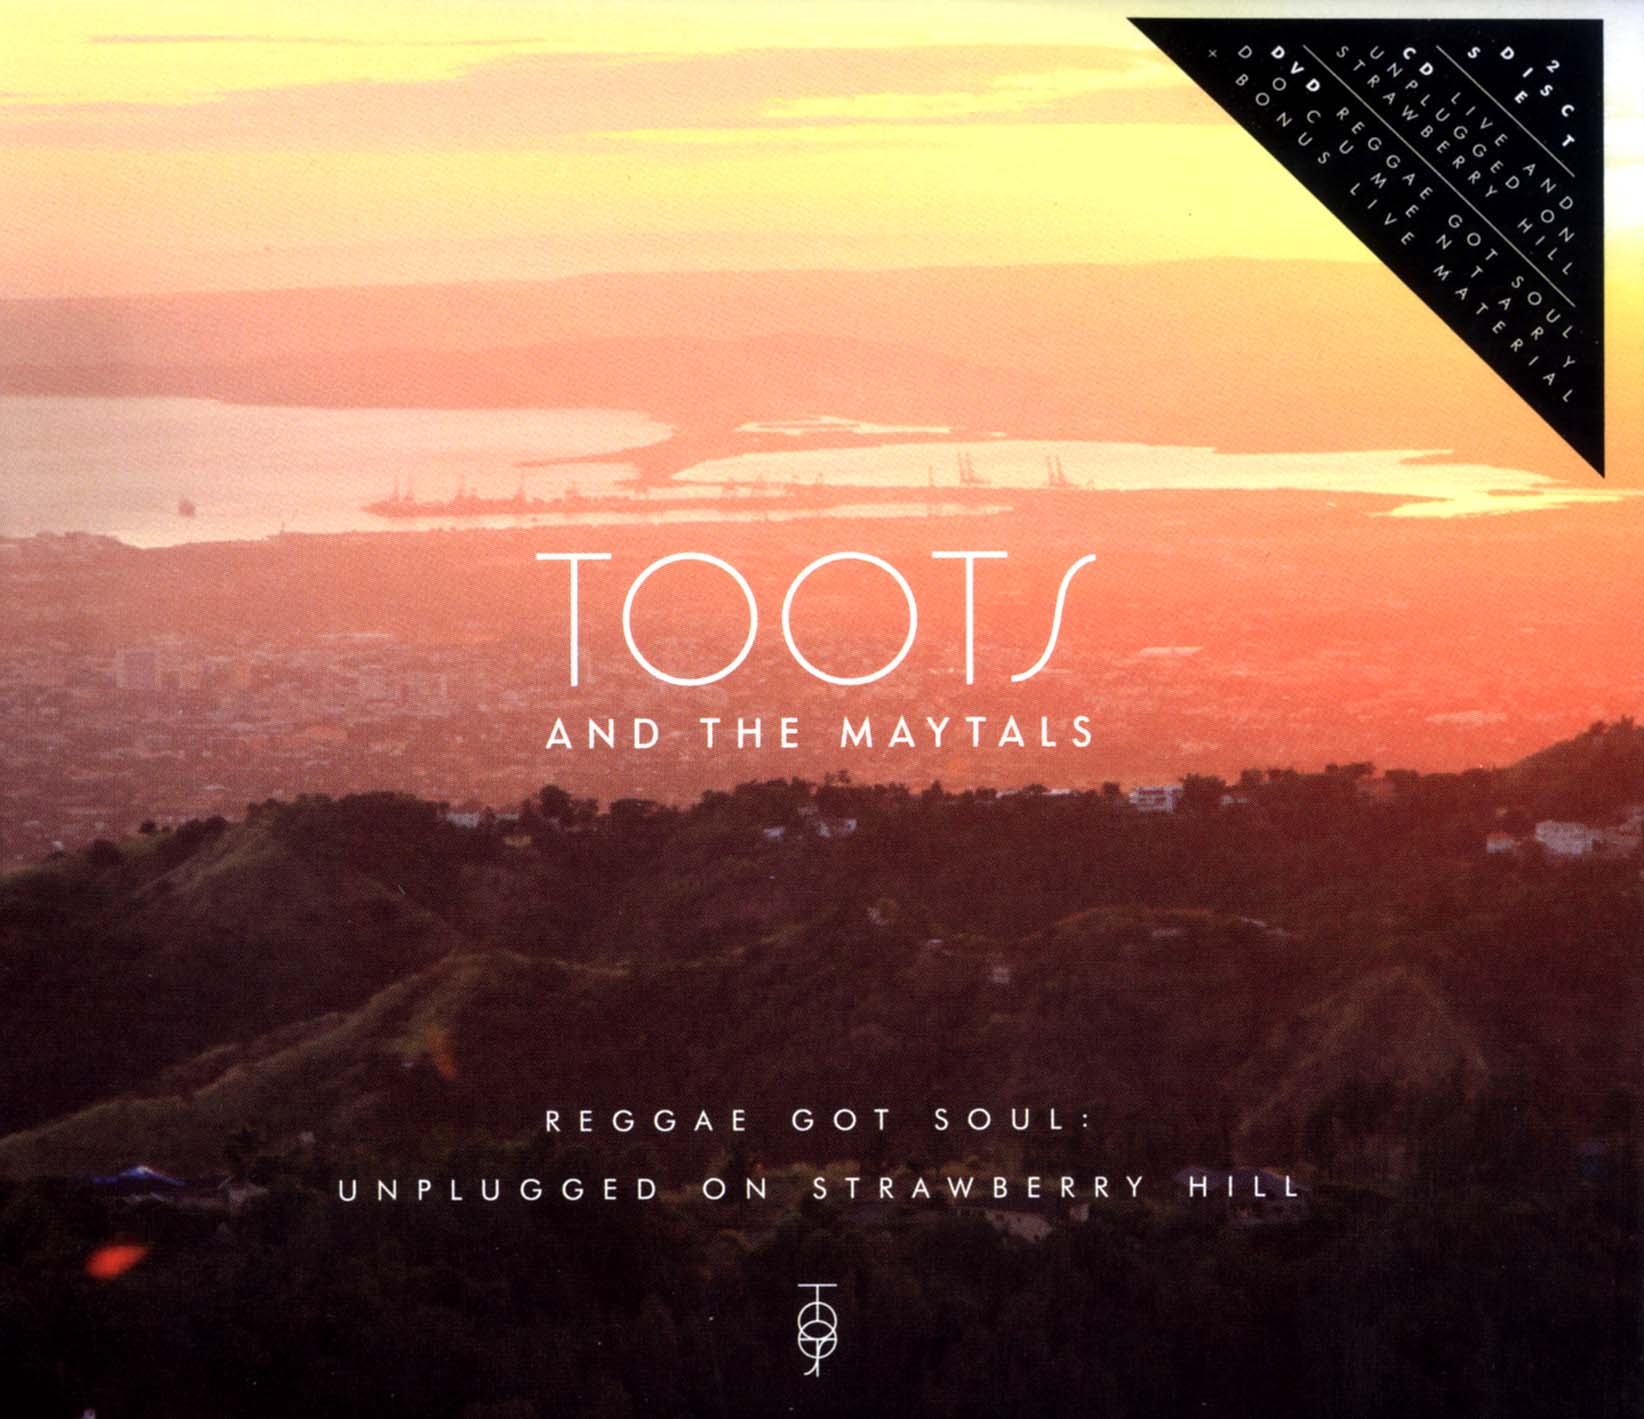 Toots and the Maytals: Live at Rockpalast, 1982